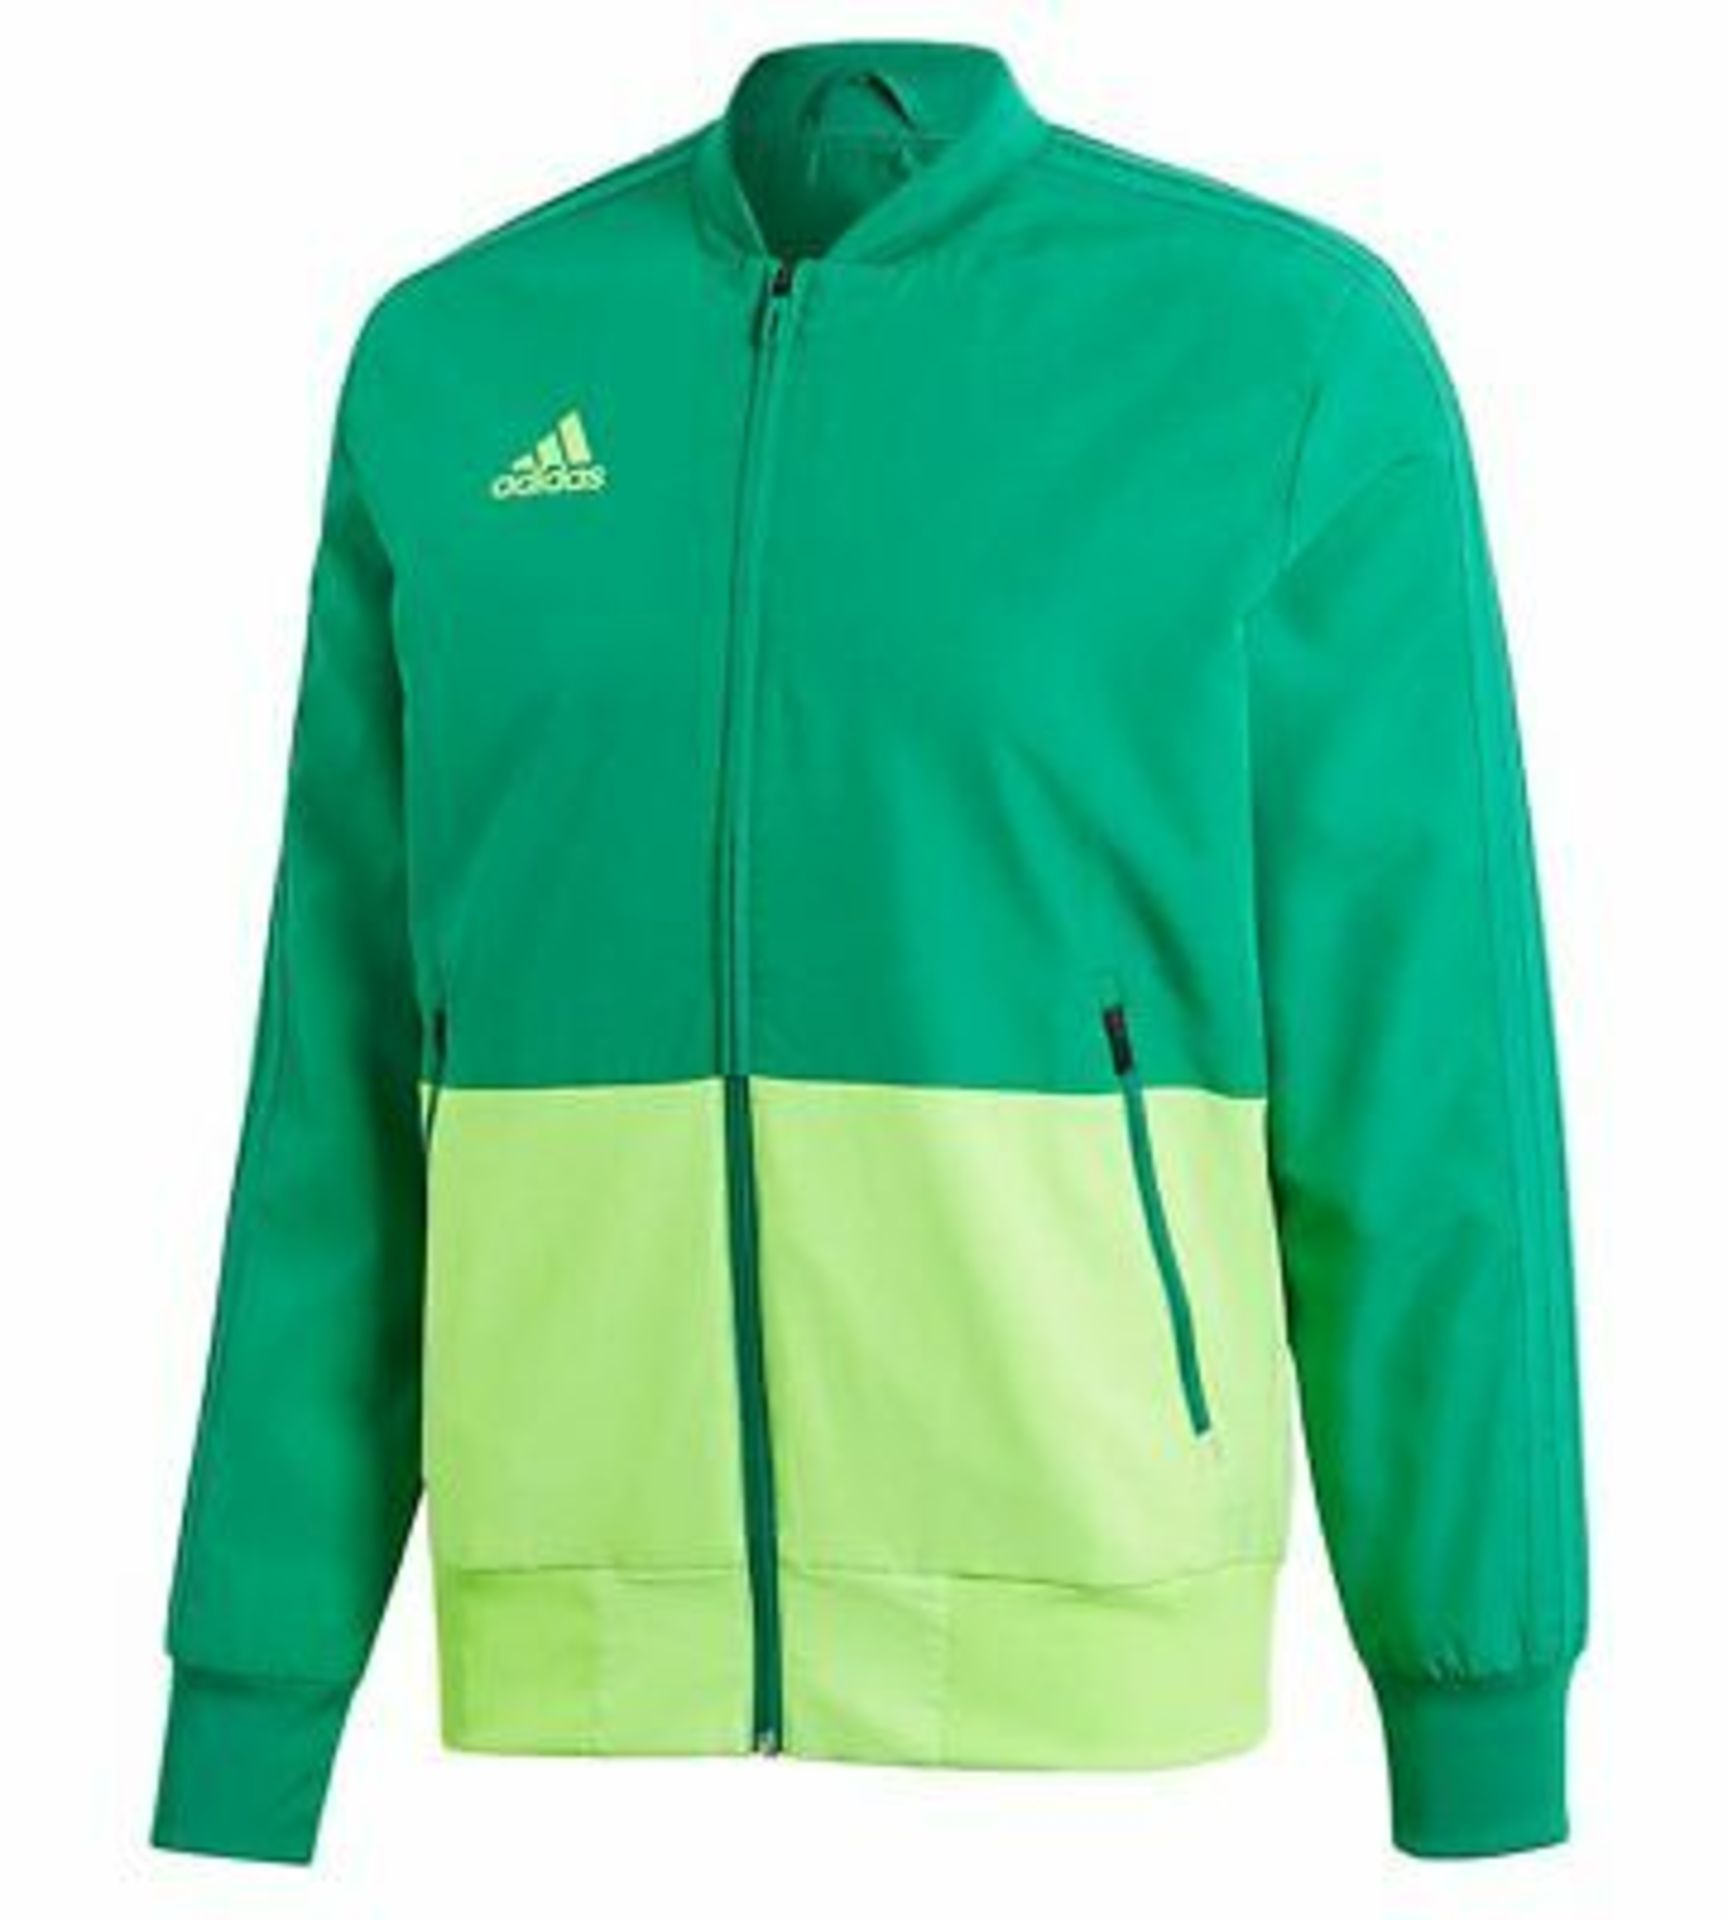 Adidas Climalite Tracksuit Top - Medium (New)